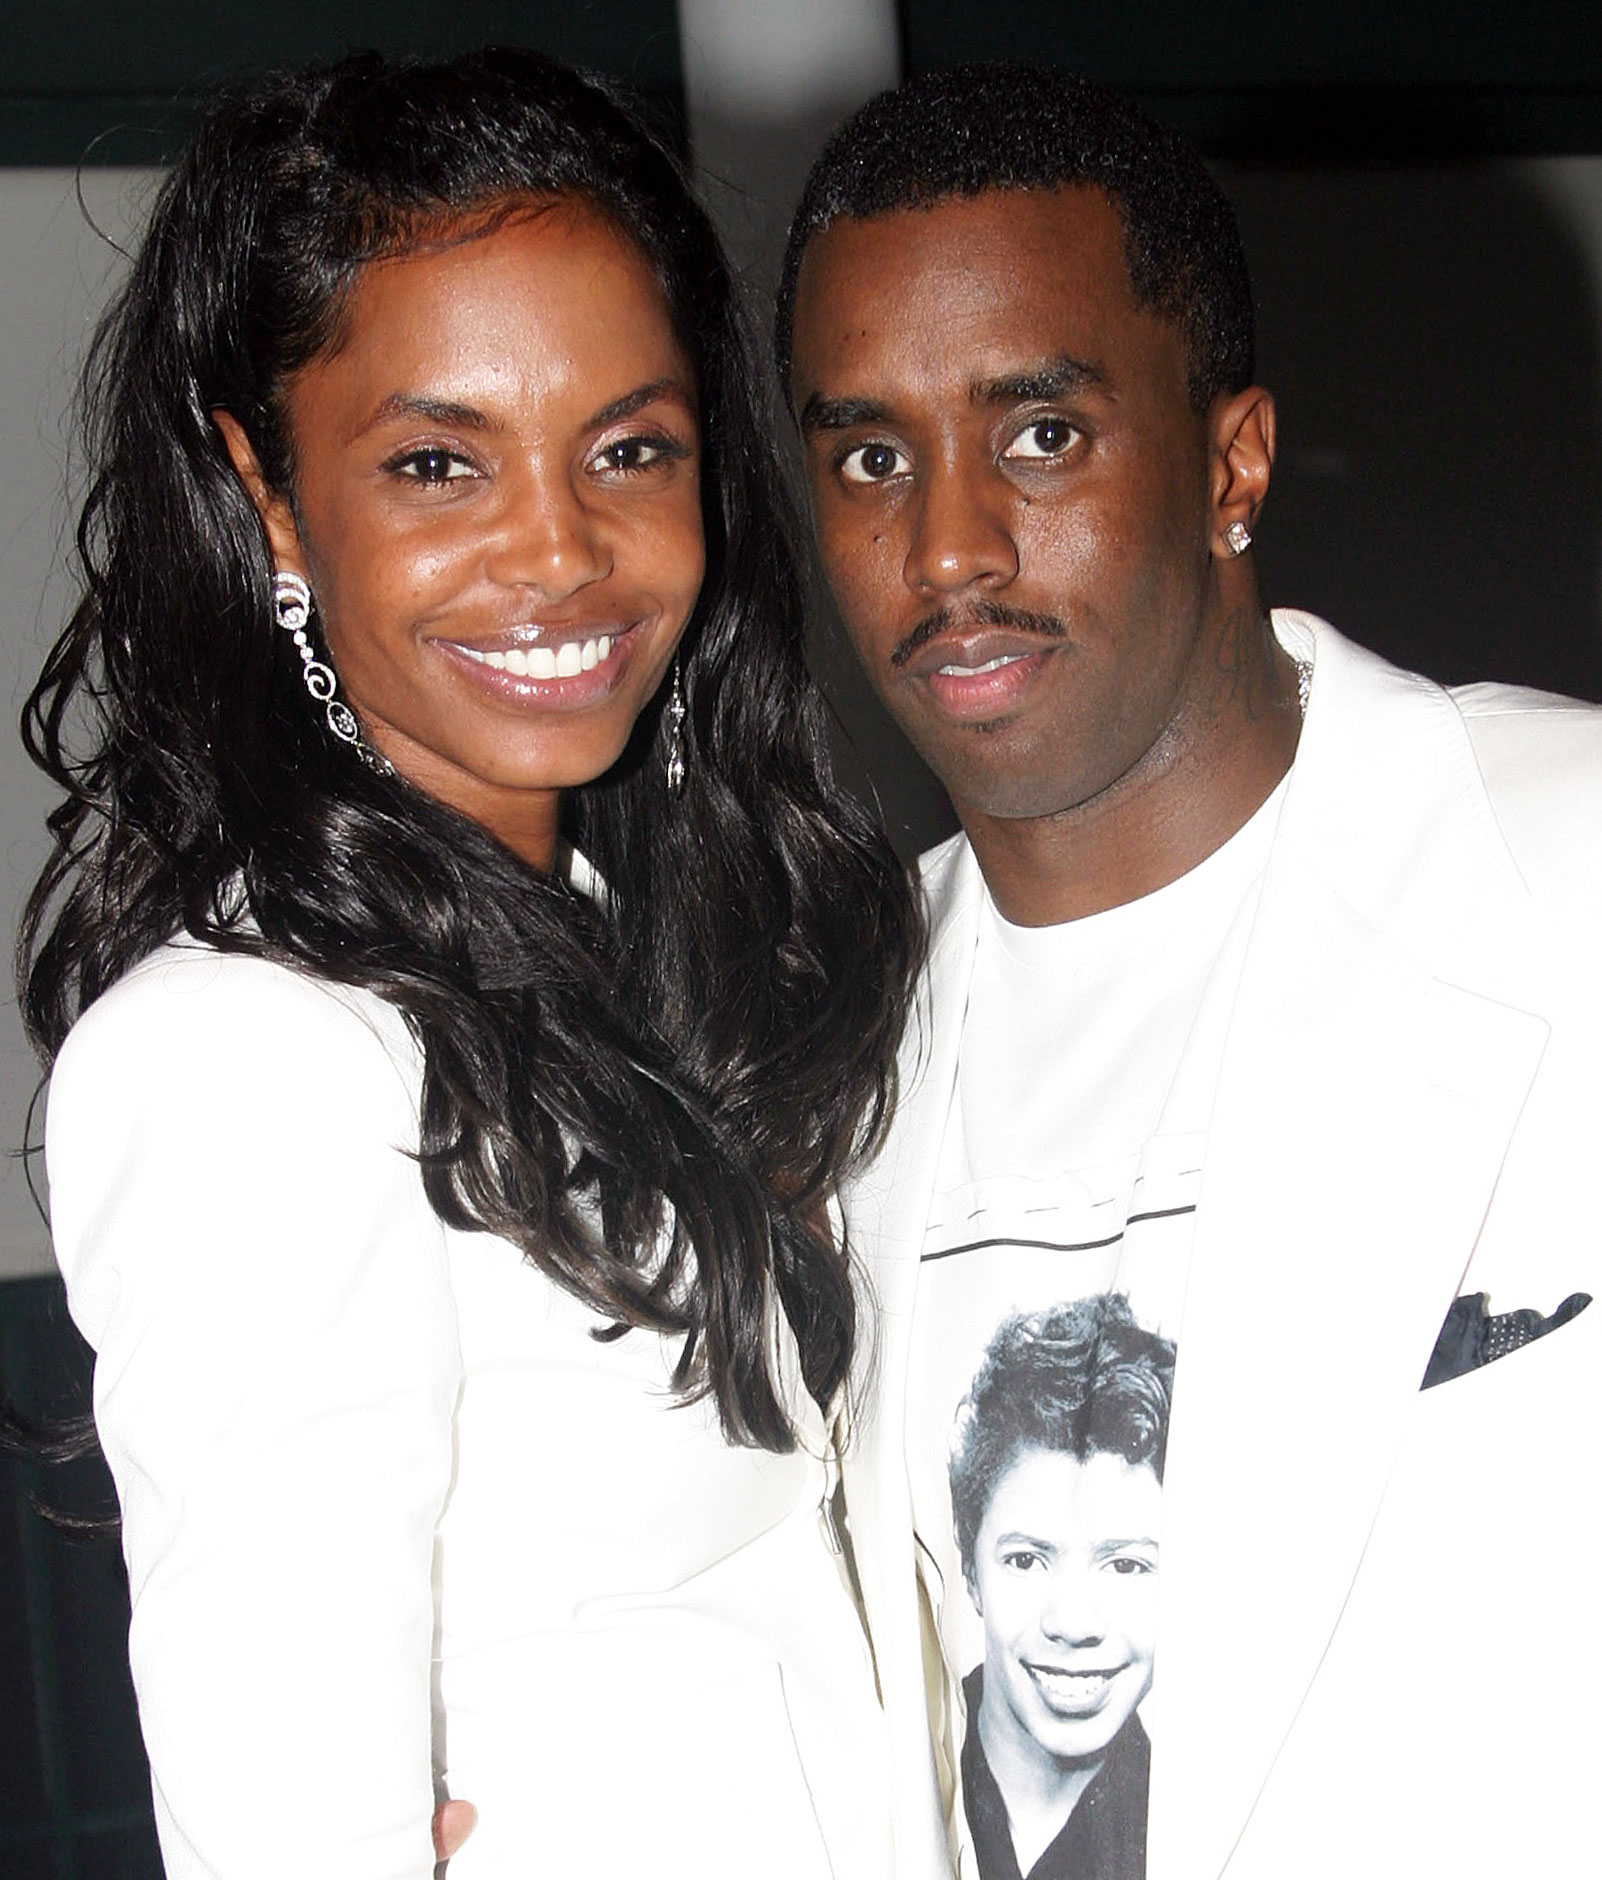 Diddy Played Myself Not Marrying Kim Porter